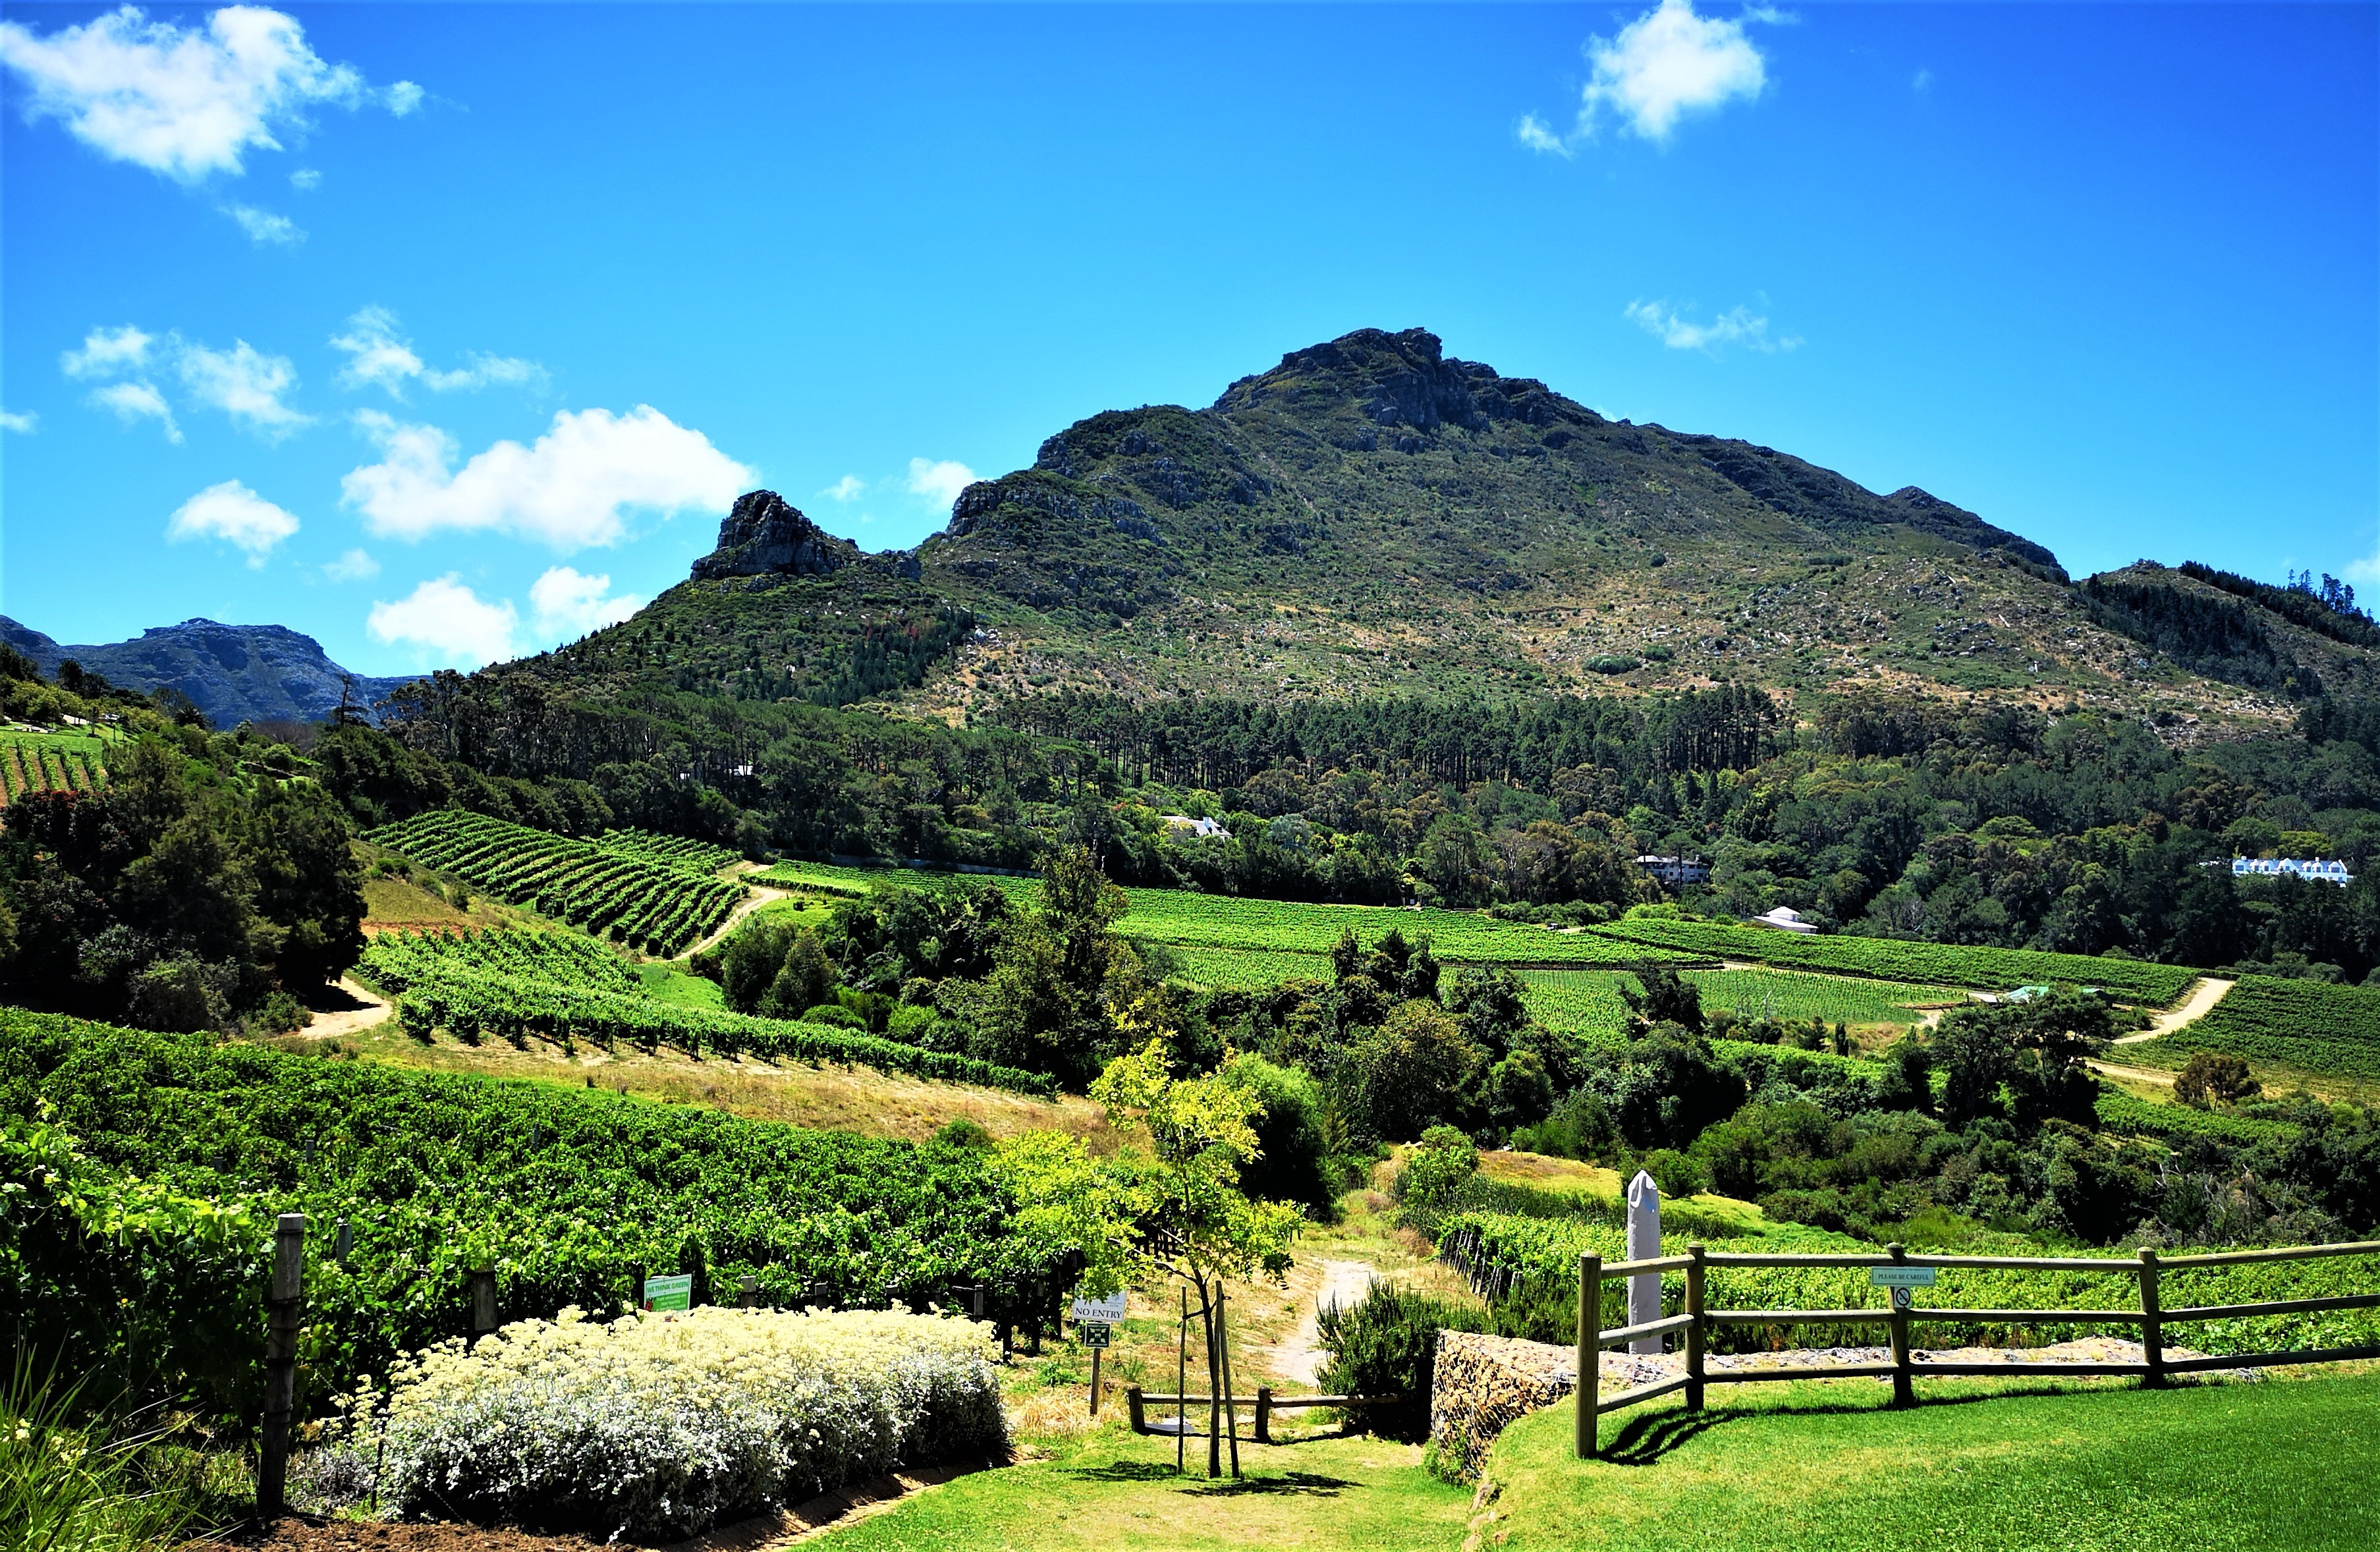 Constantia Vineyards with the backdrop of Cape Town mountains